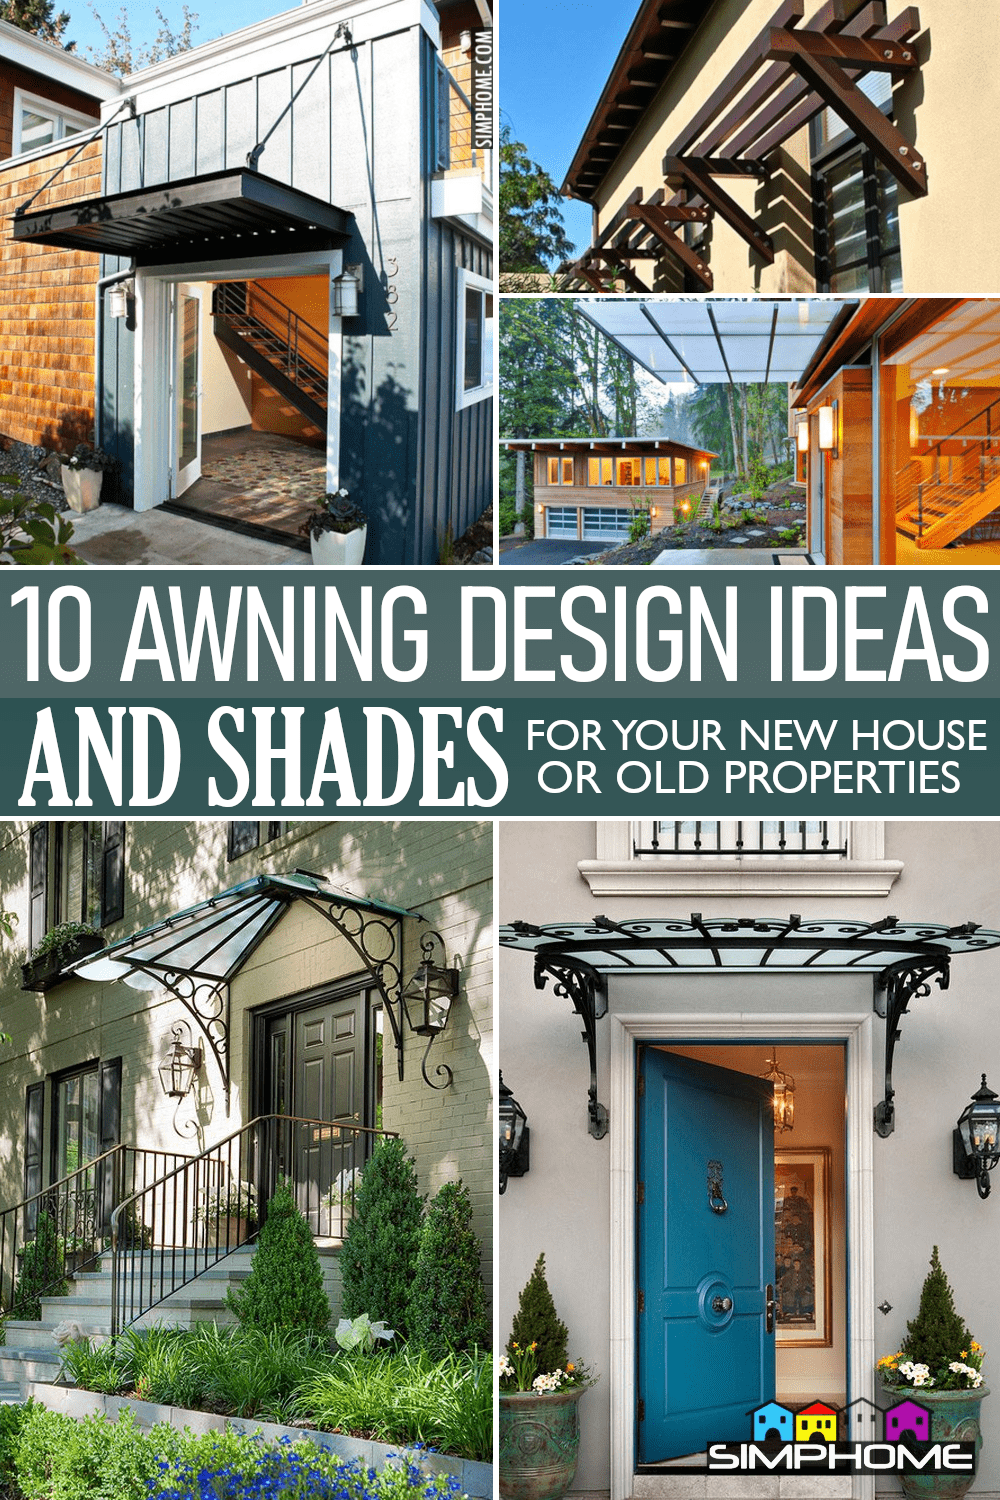 10 Awning Ideas and Shade via Simphome.comFeatured image